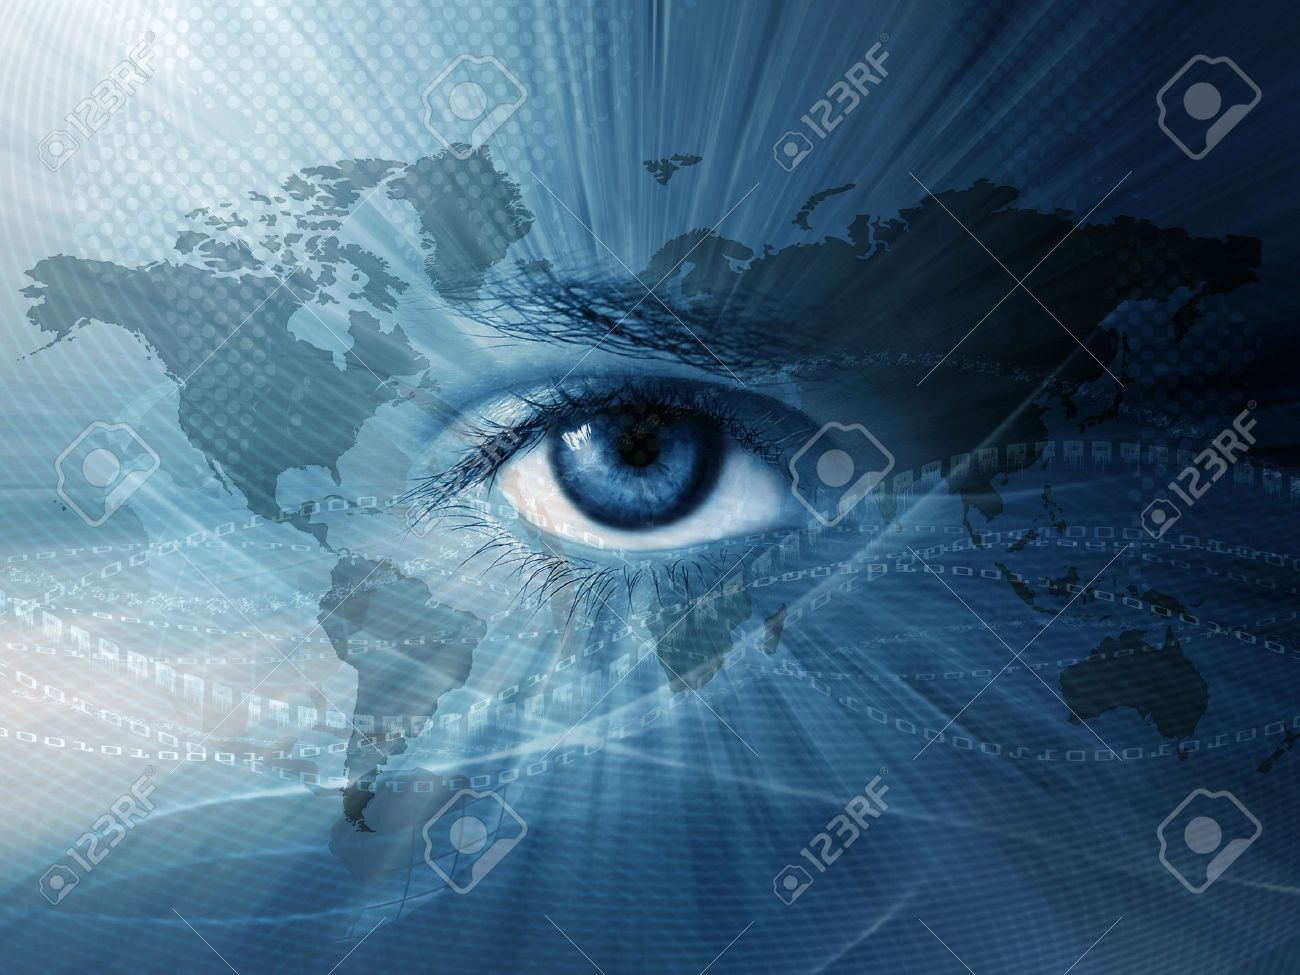 Continental abstract wallpaper with world map and blue eye - 7919321